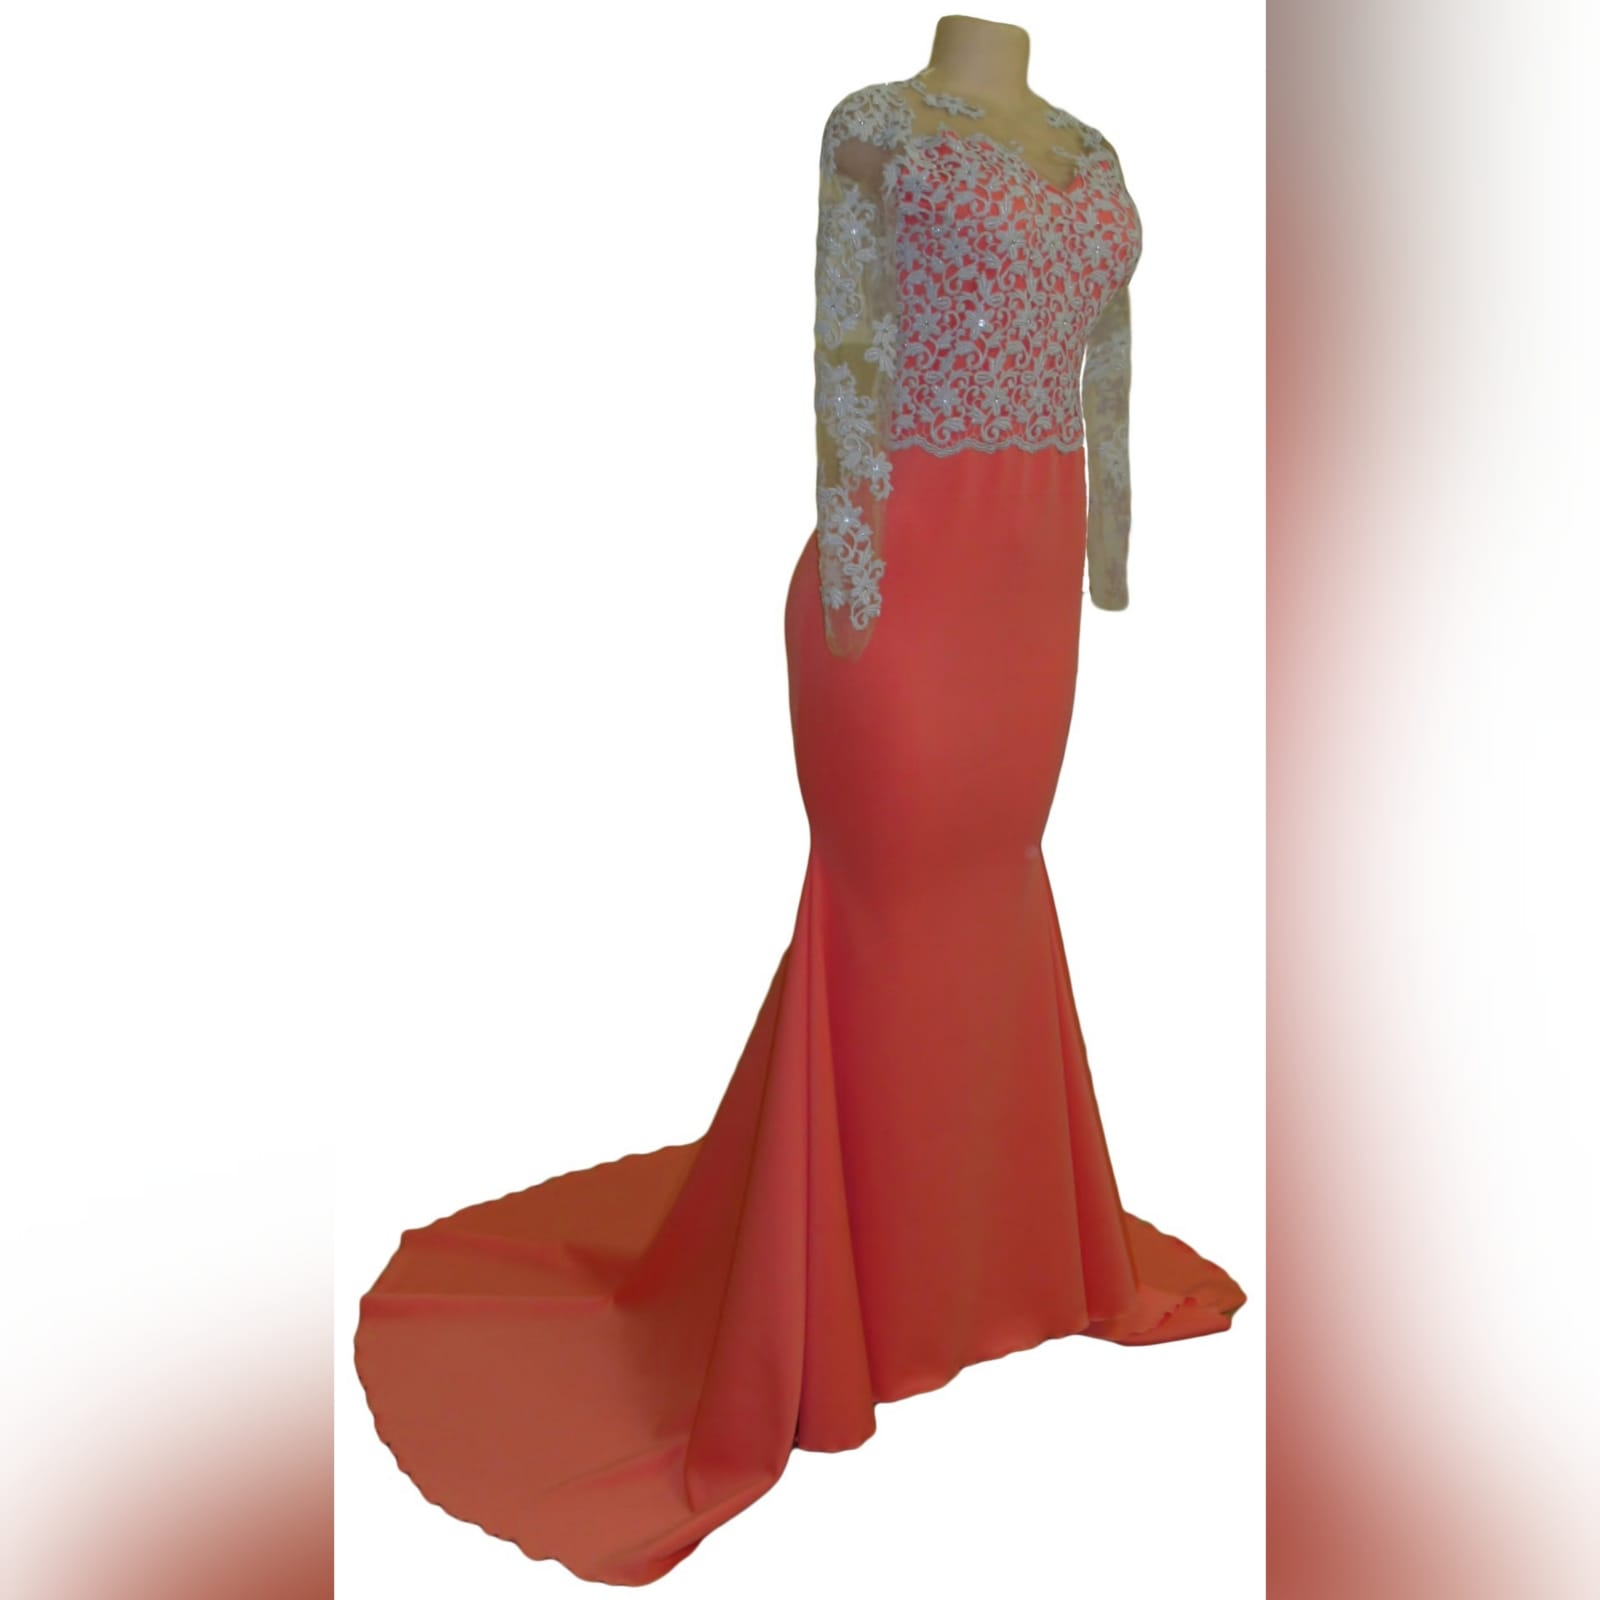 Bright coral and silver soft mermaid prom dress 2 bright coral and silver soft mermaid prom dress with a train. Bodice detailed in silver with an open heart shaped back and long illusion lace sleeves